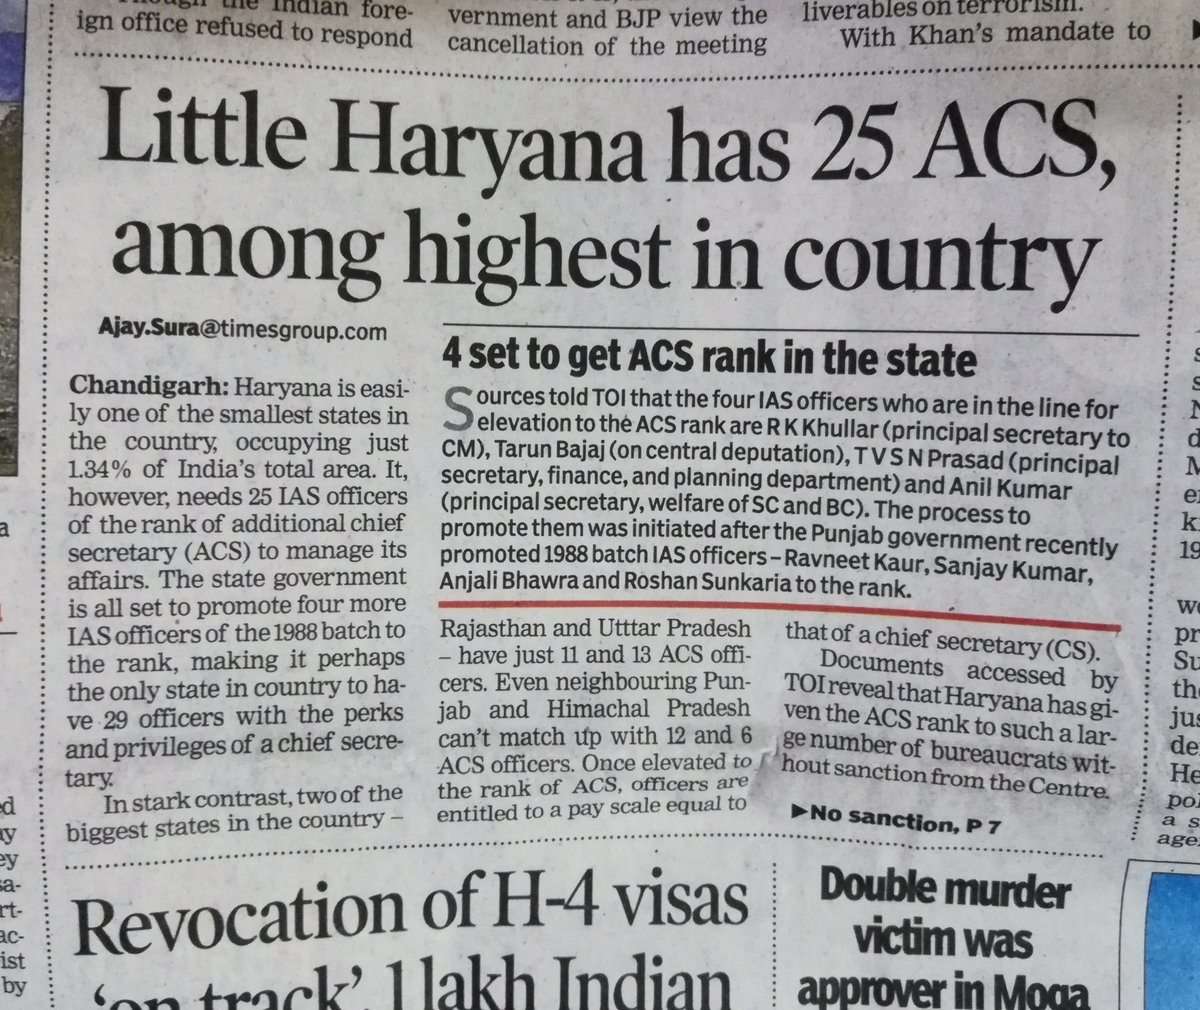 The State of Haryana now has 25 Additional Chief Secretaries. All enjoying the same pay & perks of the Chief Secretary, and all in the Apex pay grade of Secretary to Govt of India. Practical or financial prudence, anyone? :)